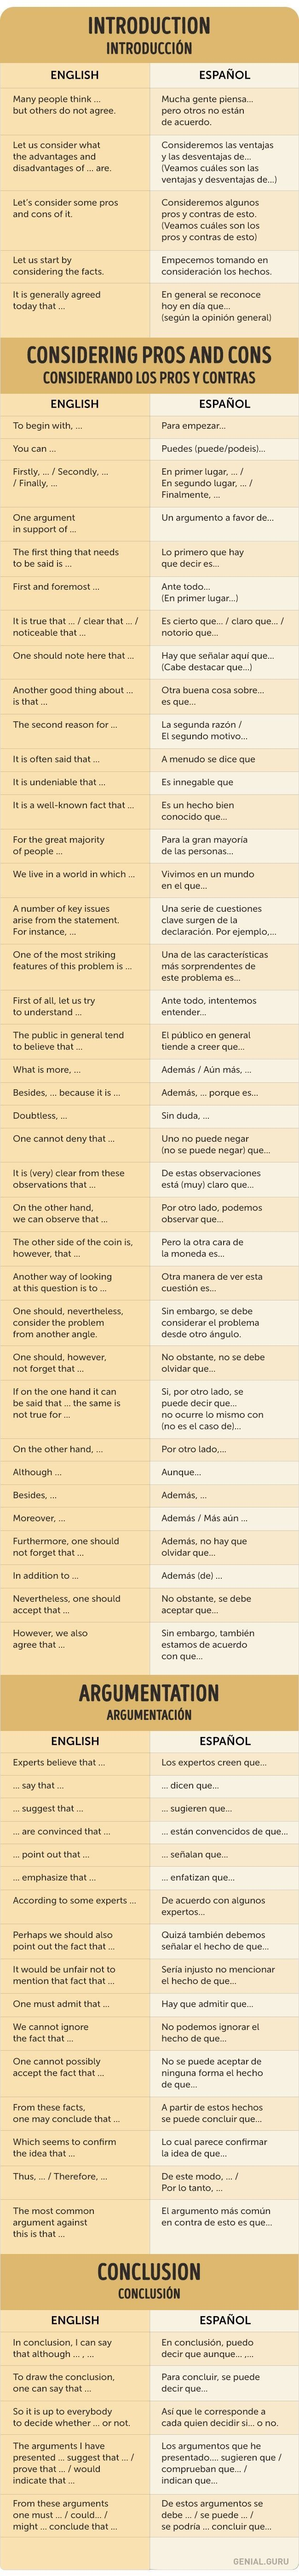 Introductions, considering pros and cons, argumentation and conclusion in #Spanish